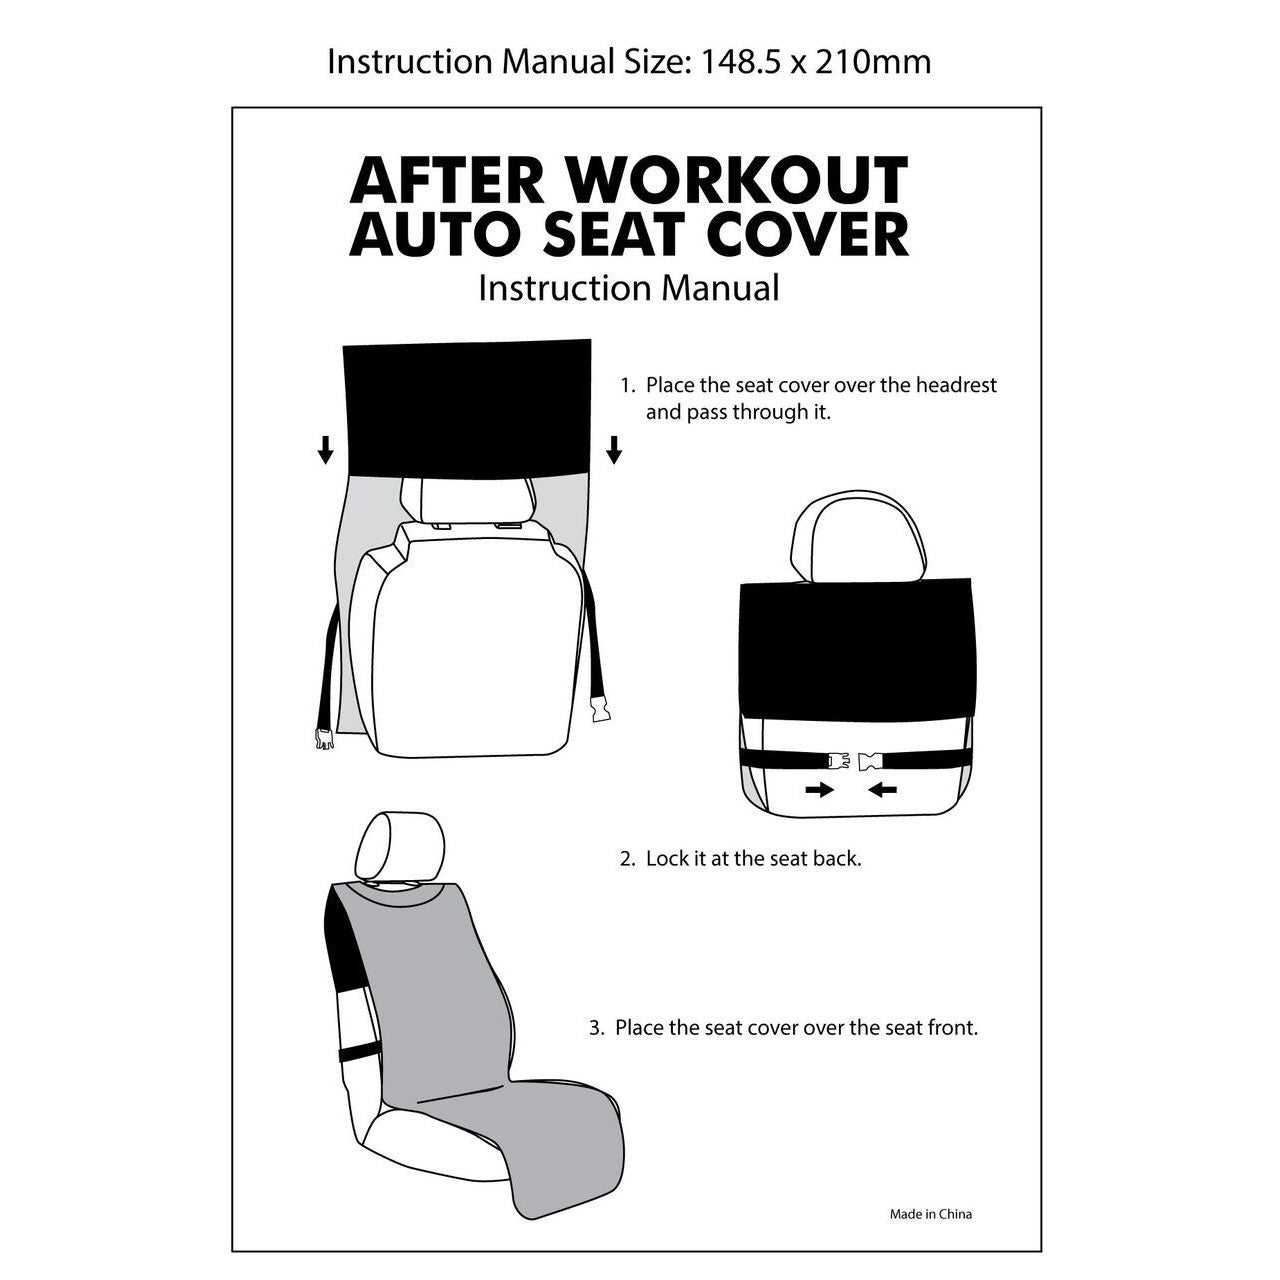 After Workout Auto Seat Cover